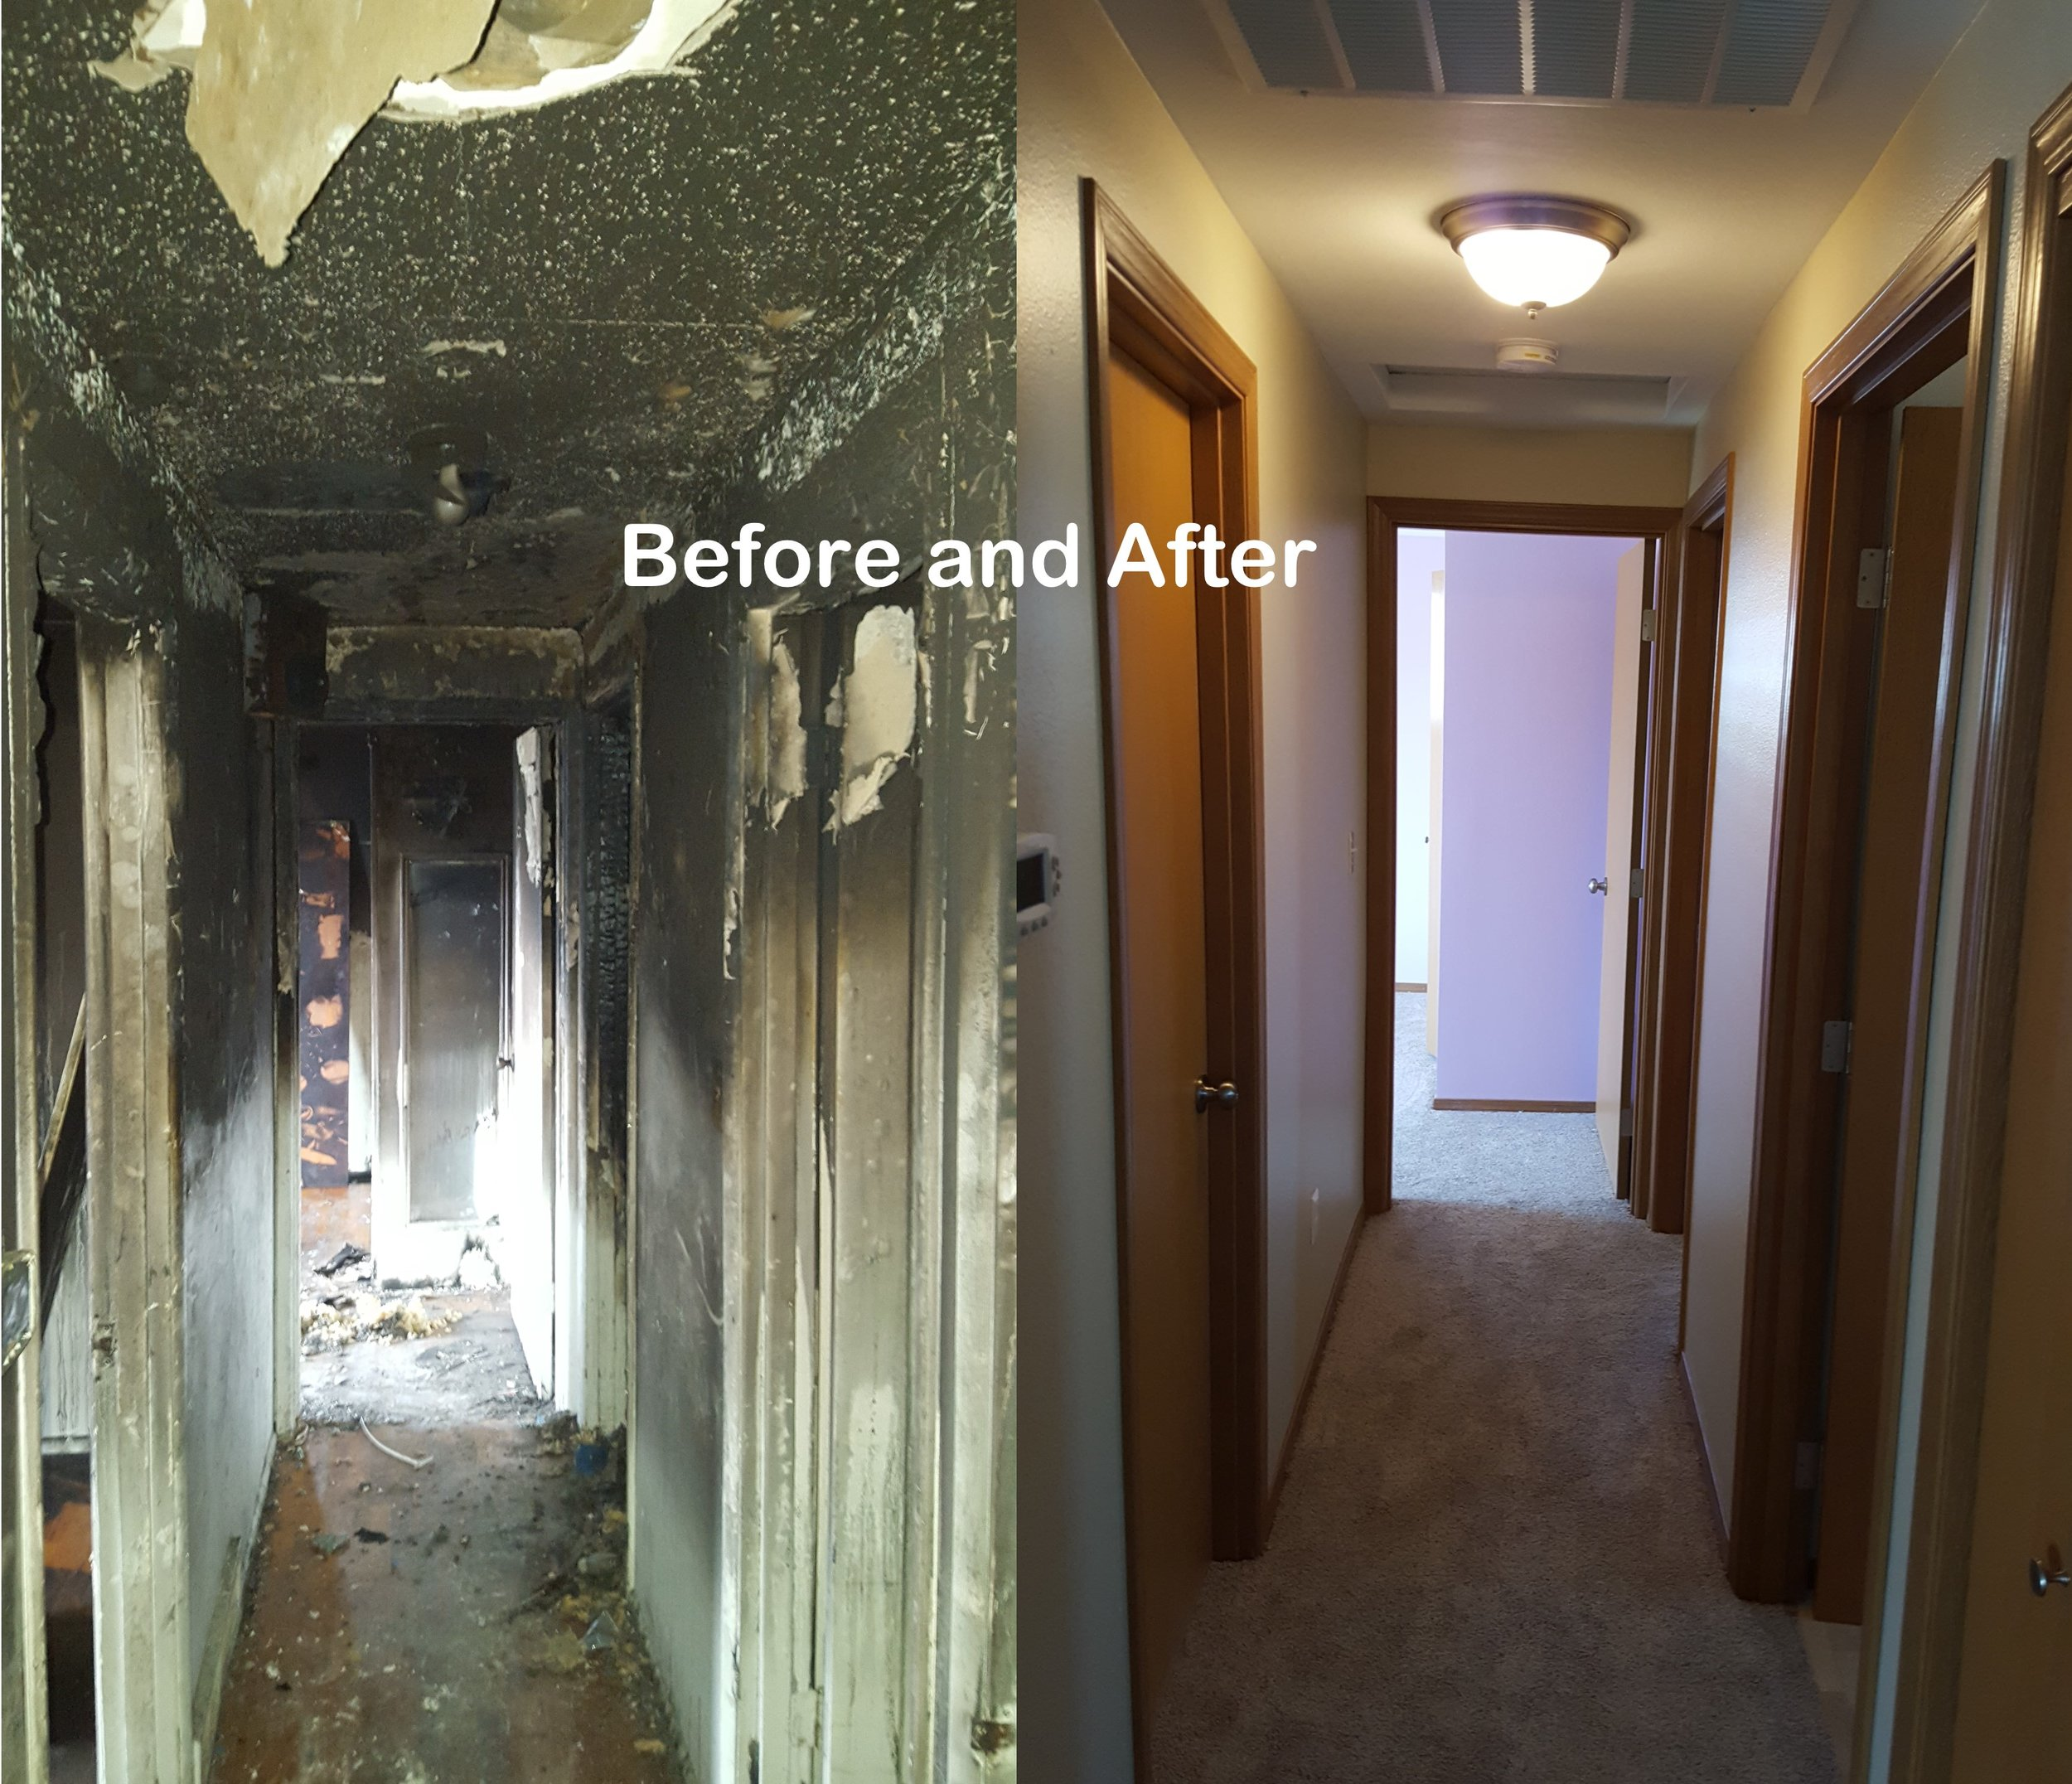 Fire Damage Before After 5.jpg